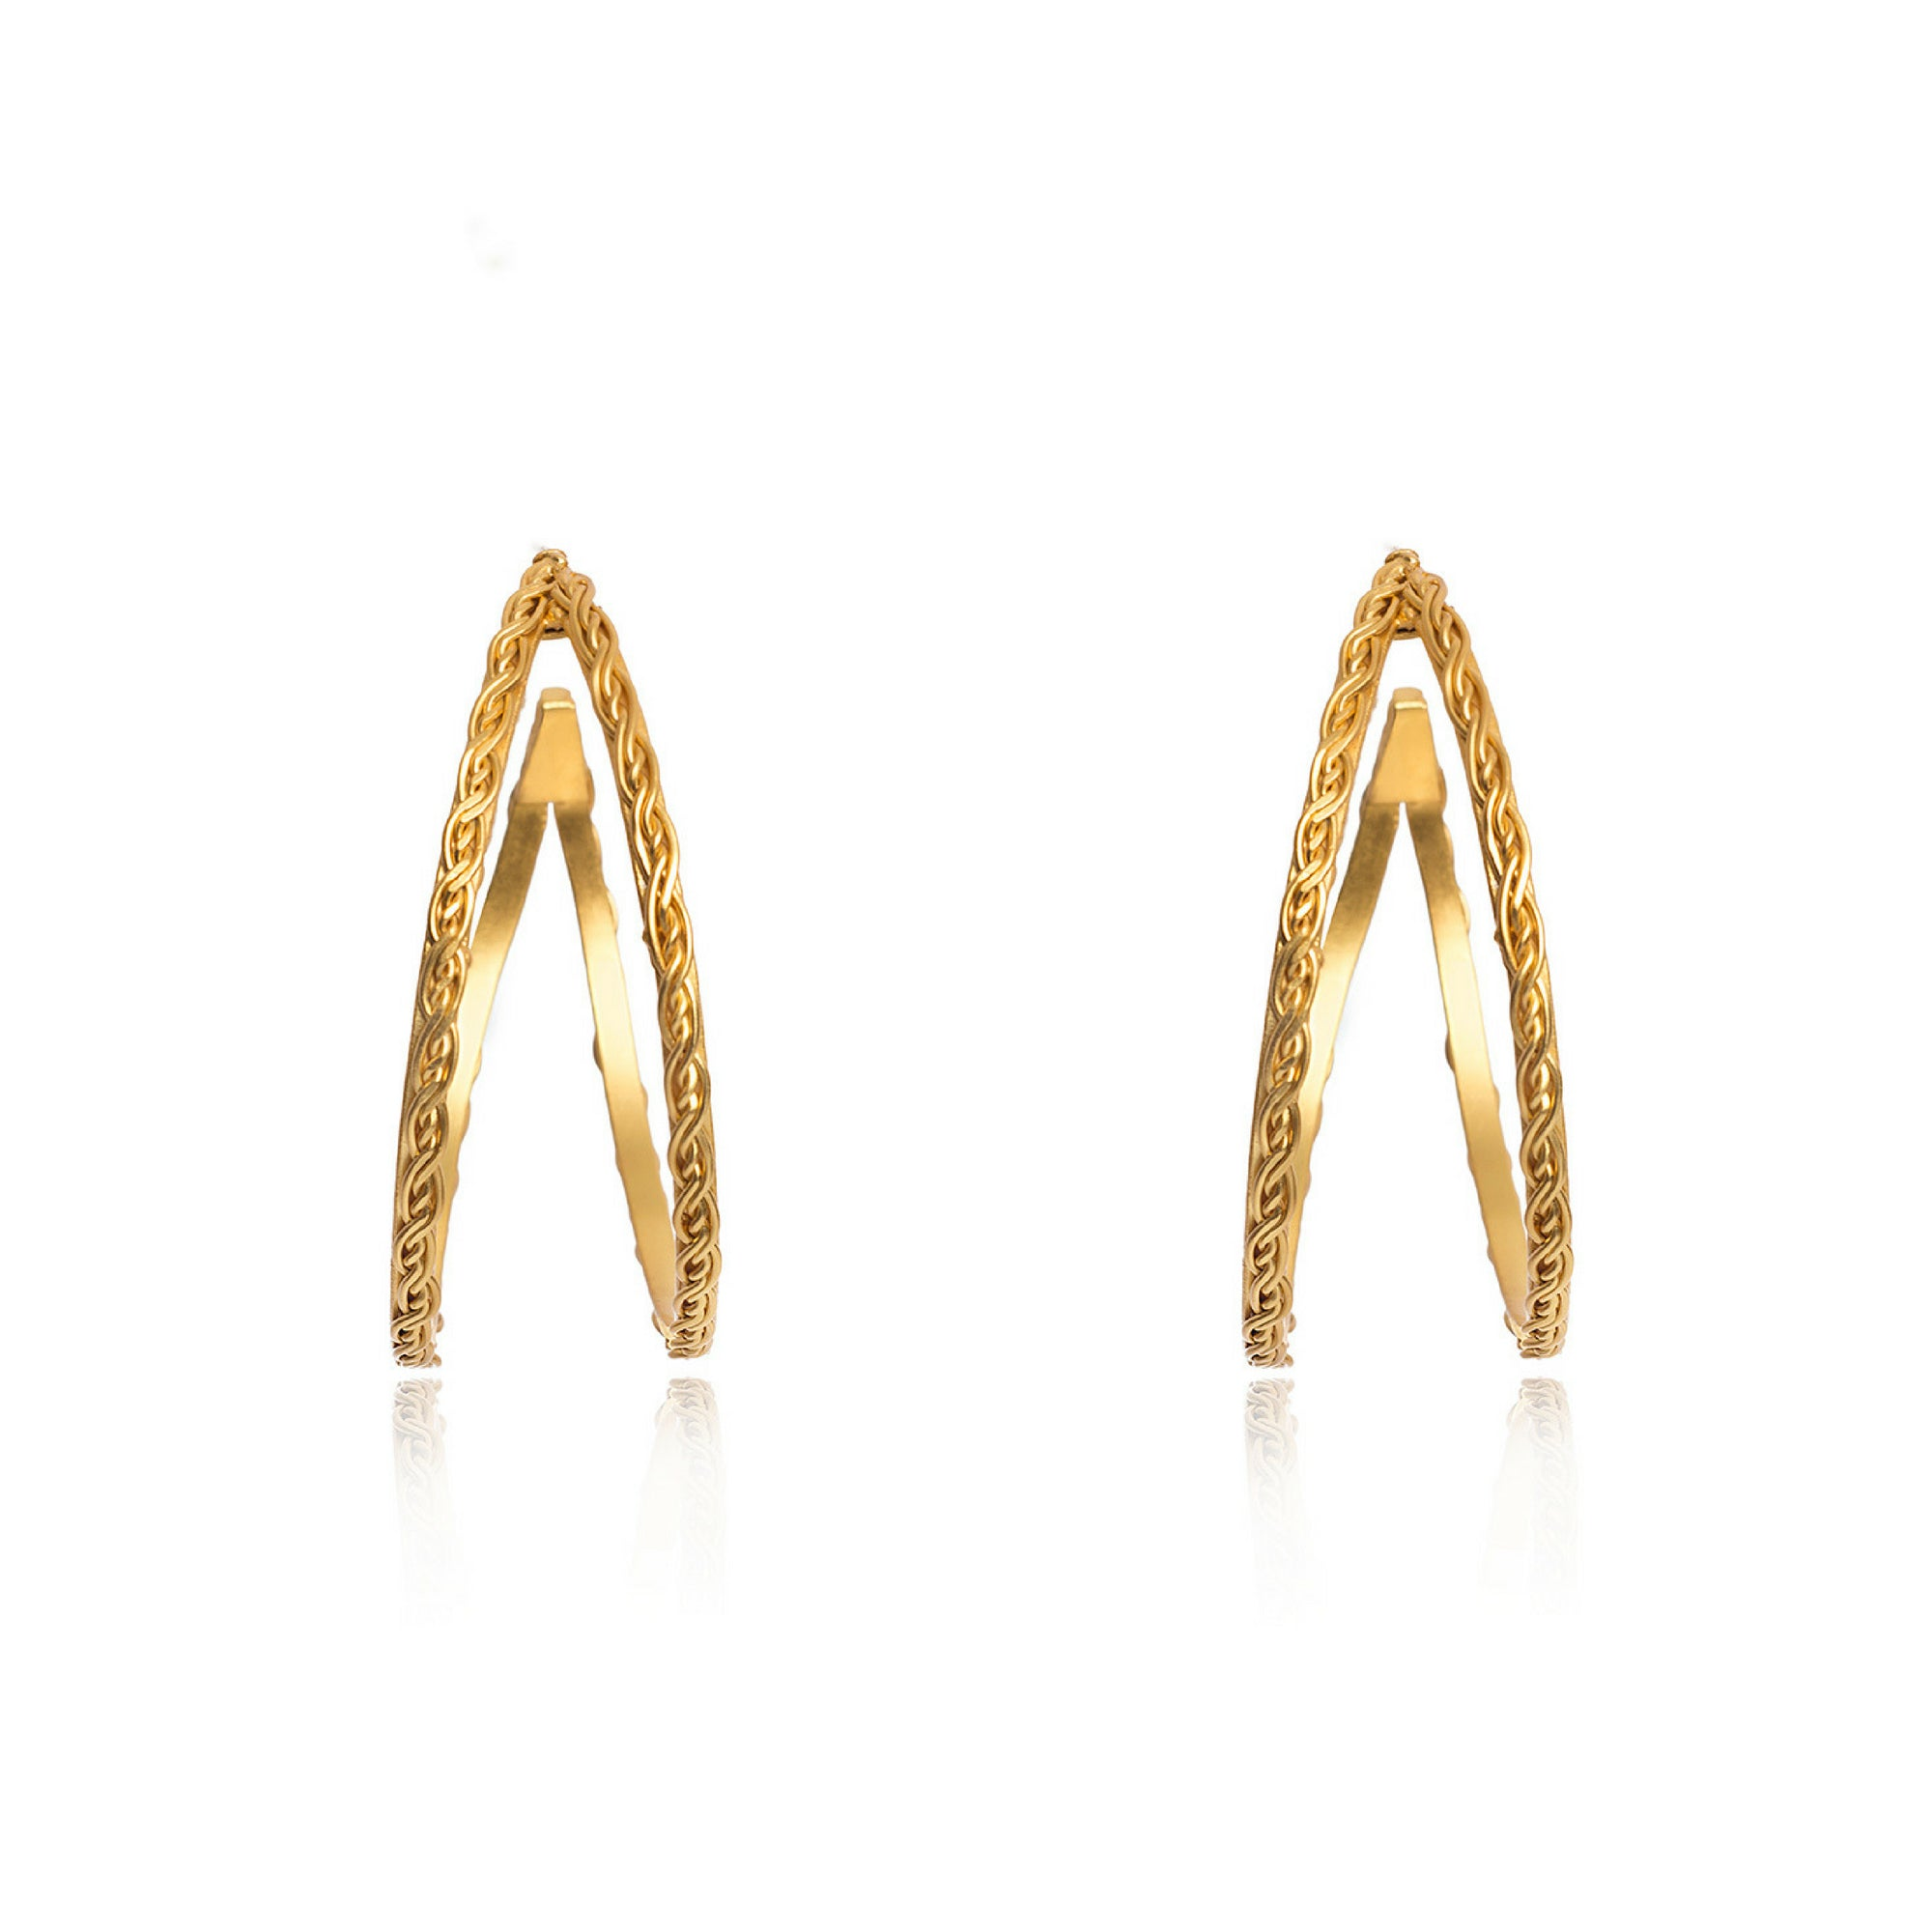 Liza Echeverry Jewelry Colombia Assemble Hoops Earrings Gold